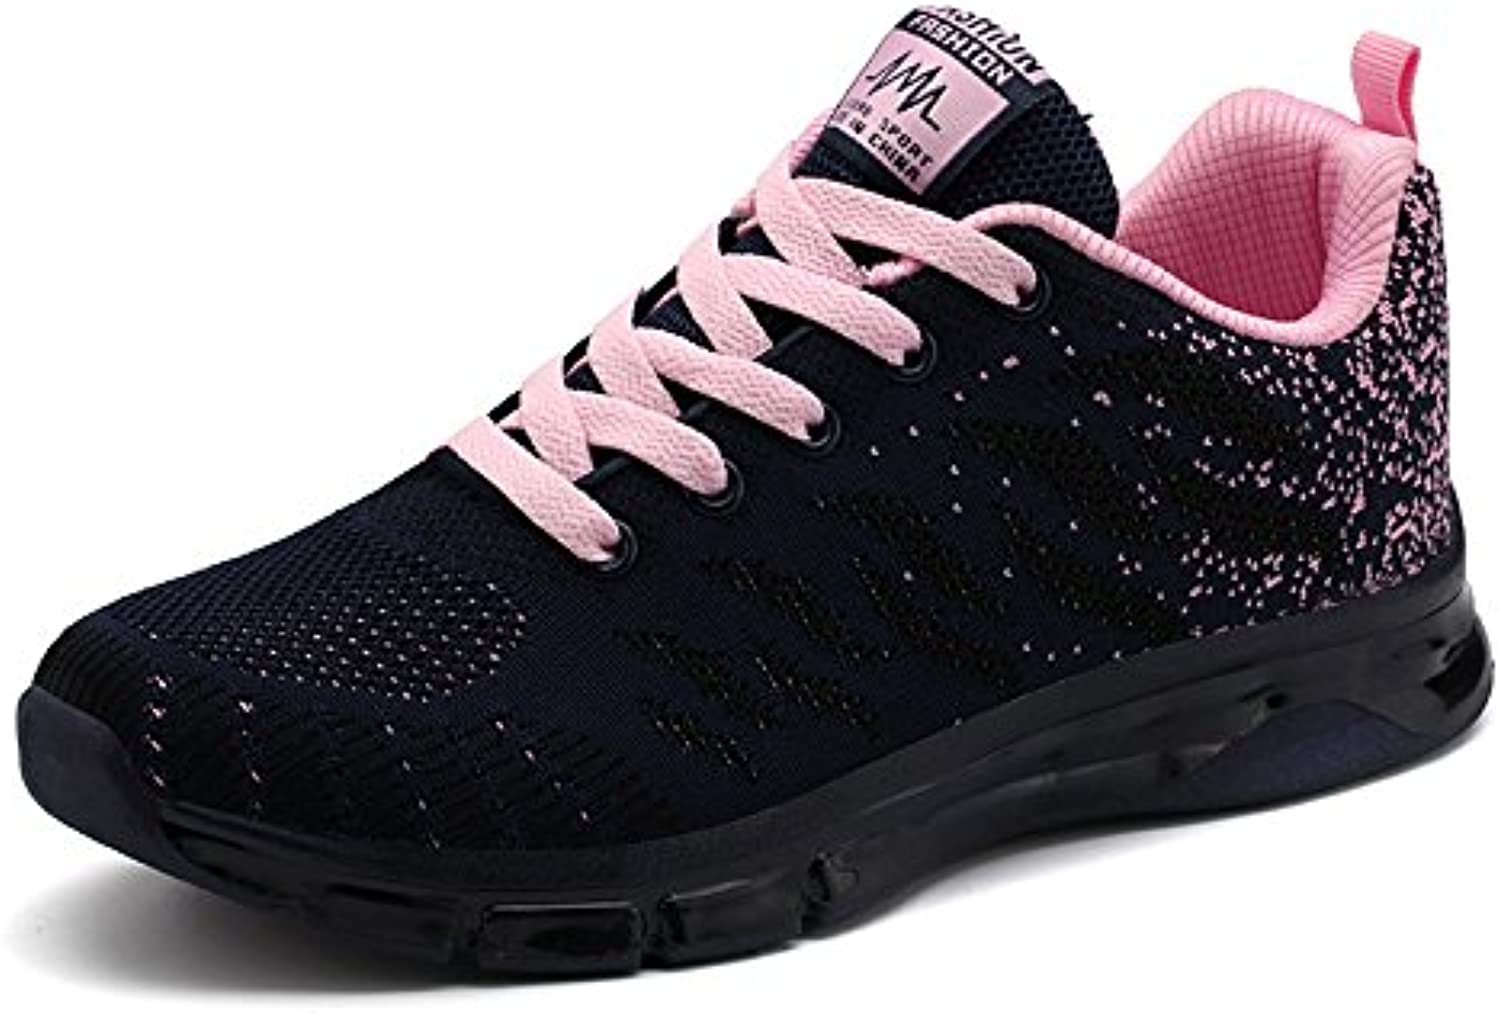 Hasag Spring New Flying Woven Shoes Air Cushion Zapatos Deportivos Mesh Running Shoes Estudiante Zapatos Casuales...